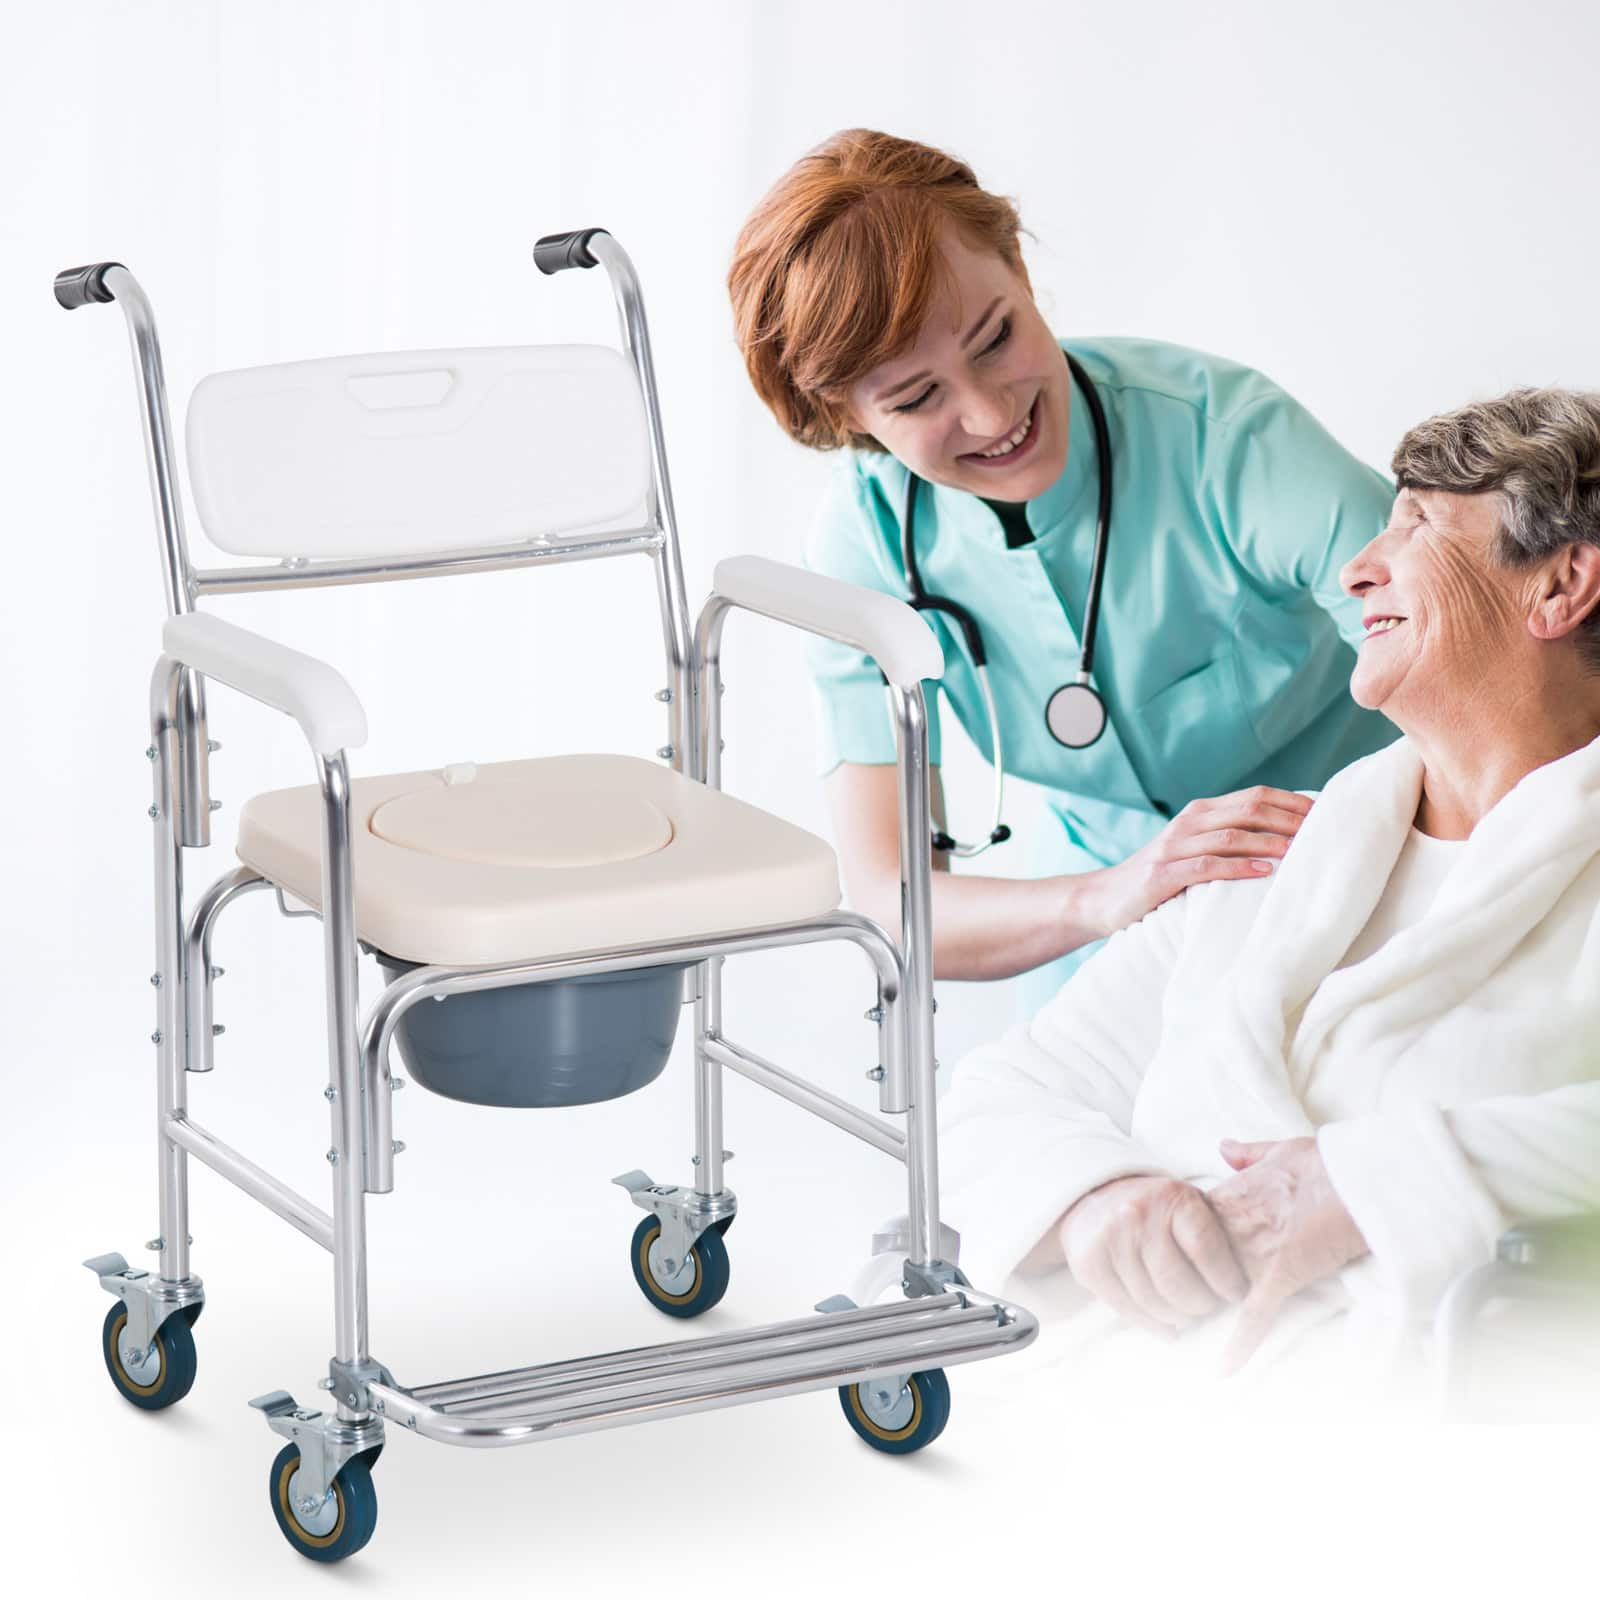 HomCom Personal Mobility Shower Accessible Transport Commode - $79.99 + Free Shipping